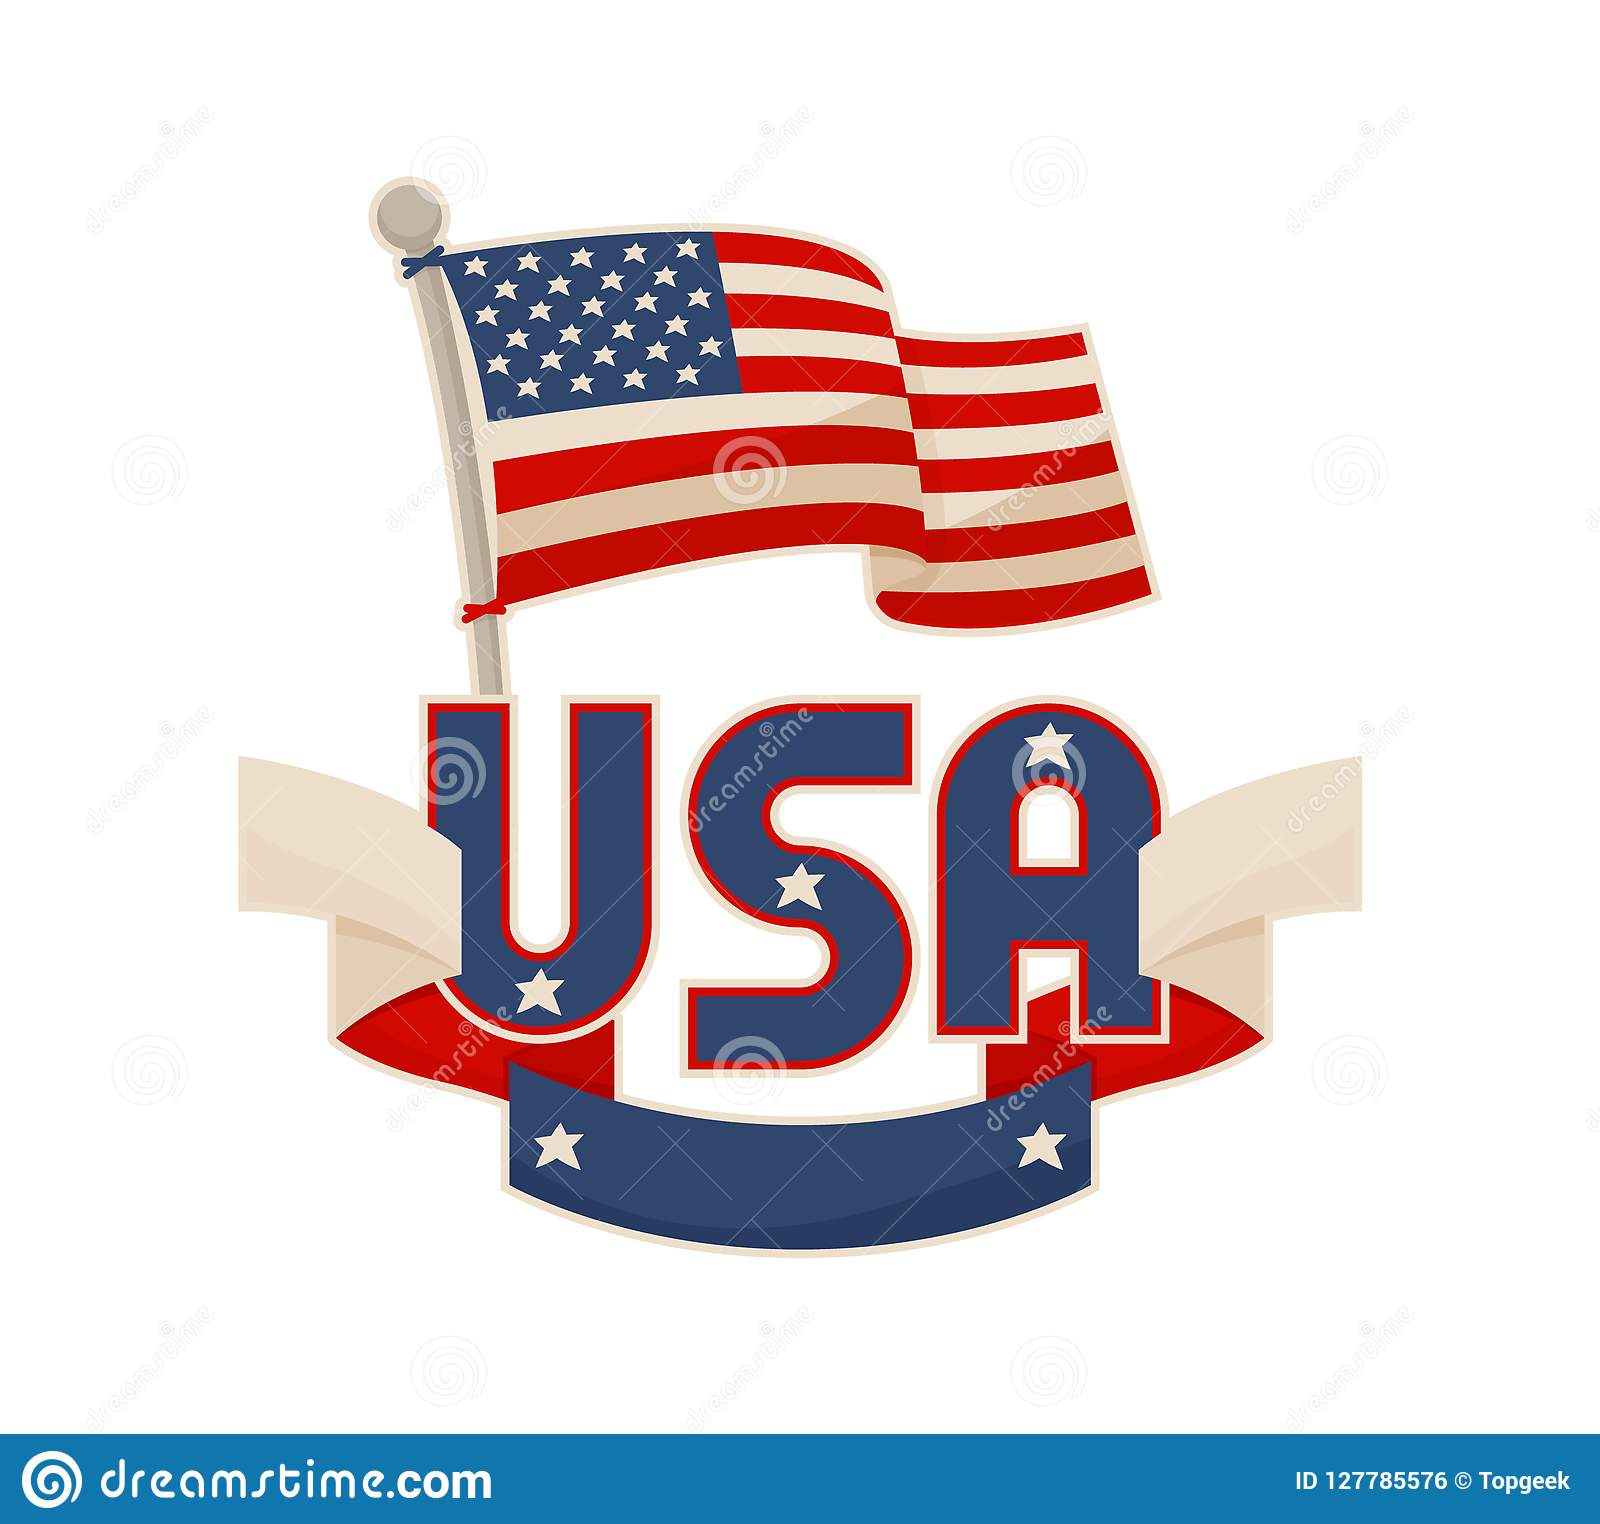 d2afa5a59b6b USA National Symbols Vector Color Illustration Stock Vector ...